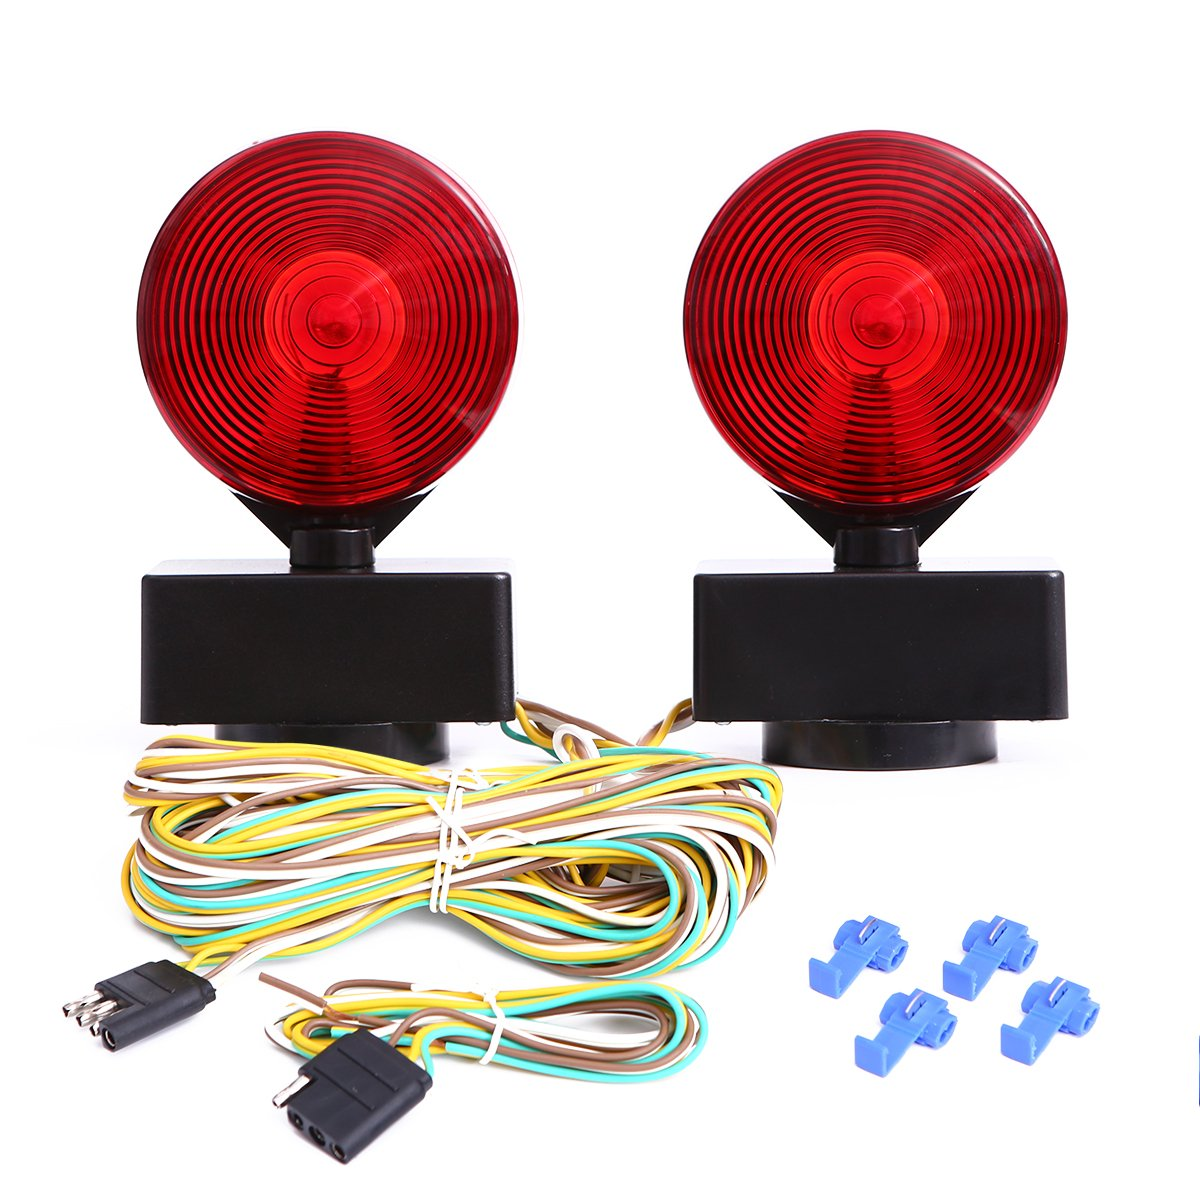 CZC AUTO 12V Two Sided Magnetic Towing Light Kit for Trailer RV Boat Truck -Magnetic Strength 55 Pounds by CZC AUTO